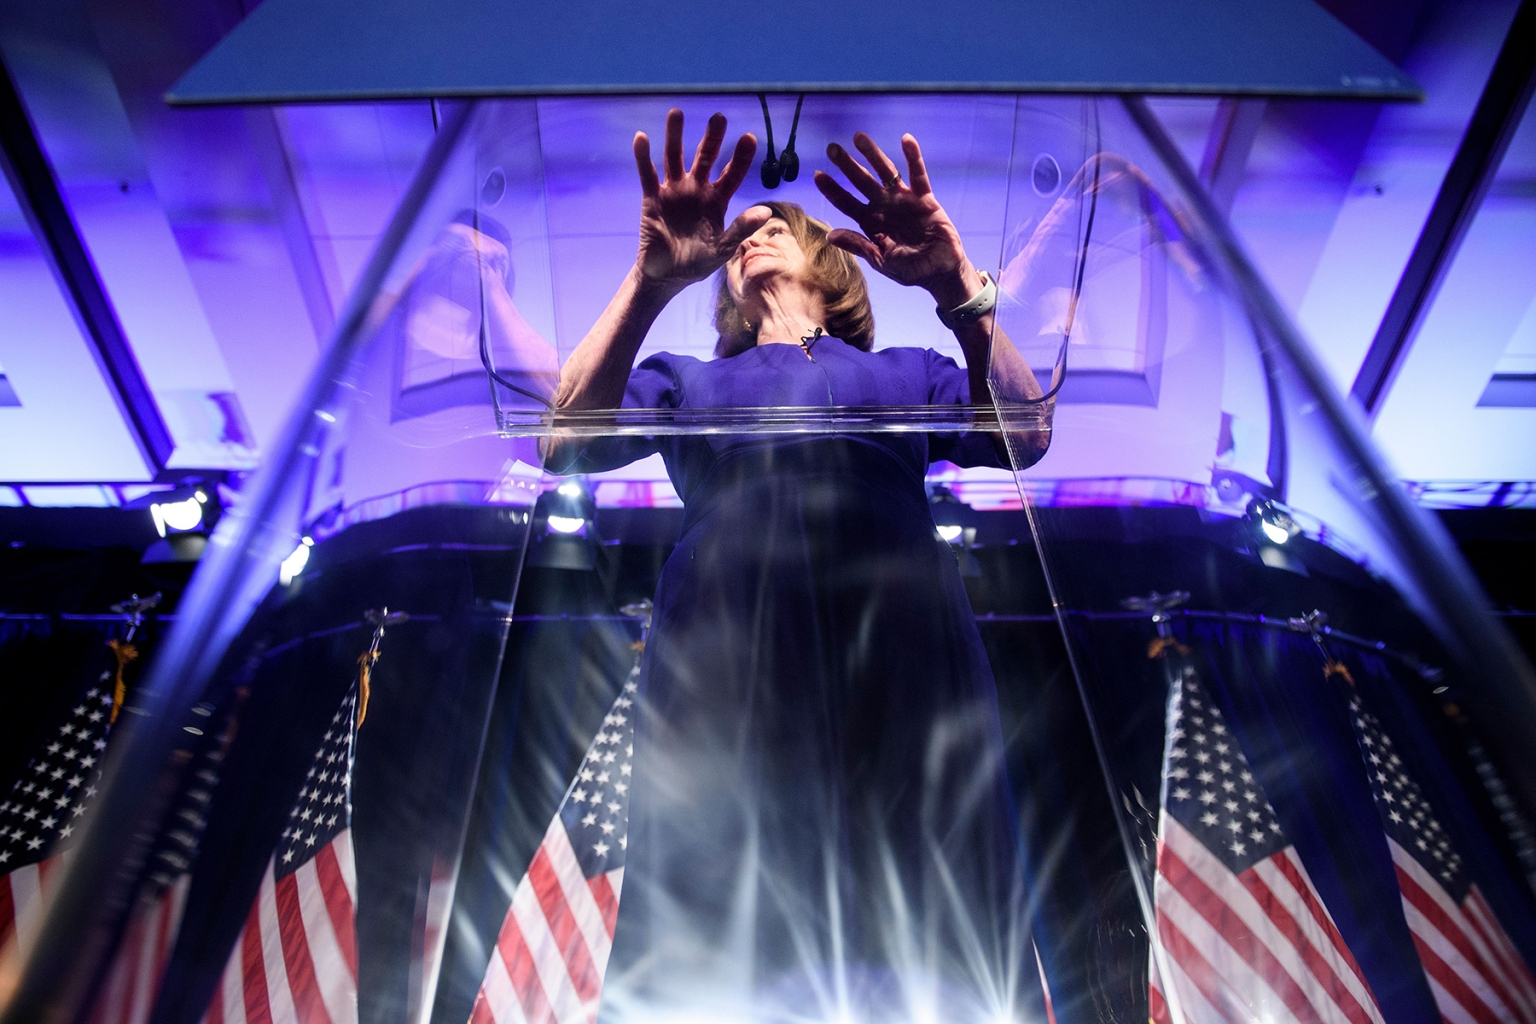 House Minority Leader Nancy Pelosi speaks during a midterm election night party hosted by the Democratic Congressional Campaign Committee in Washington on Nov. 6. BRENDAN SMIALOWSKI/AFP/Getty Images